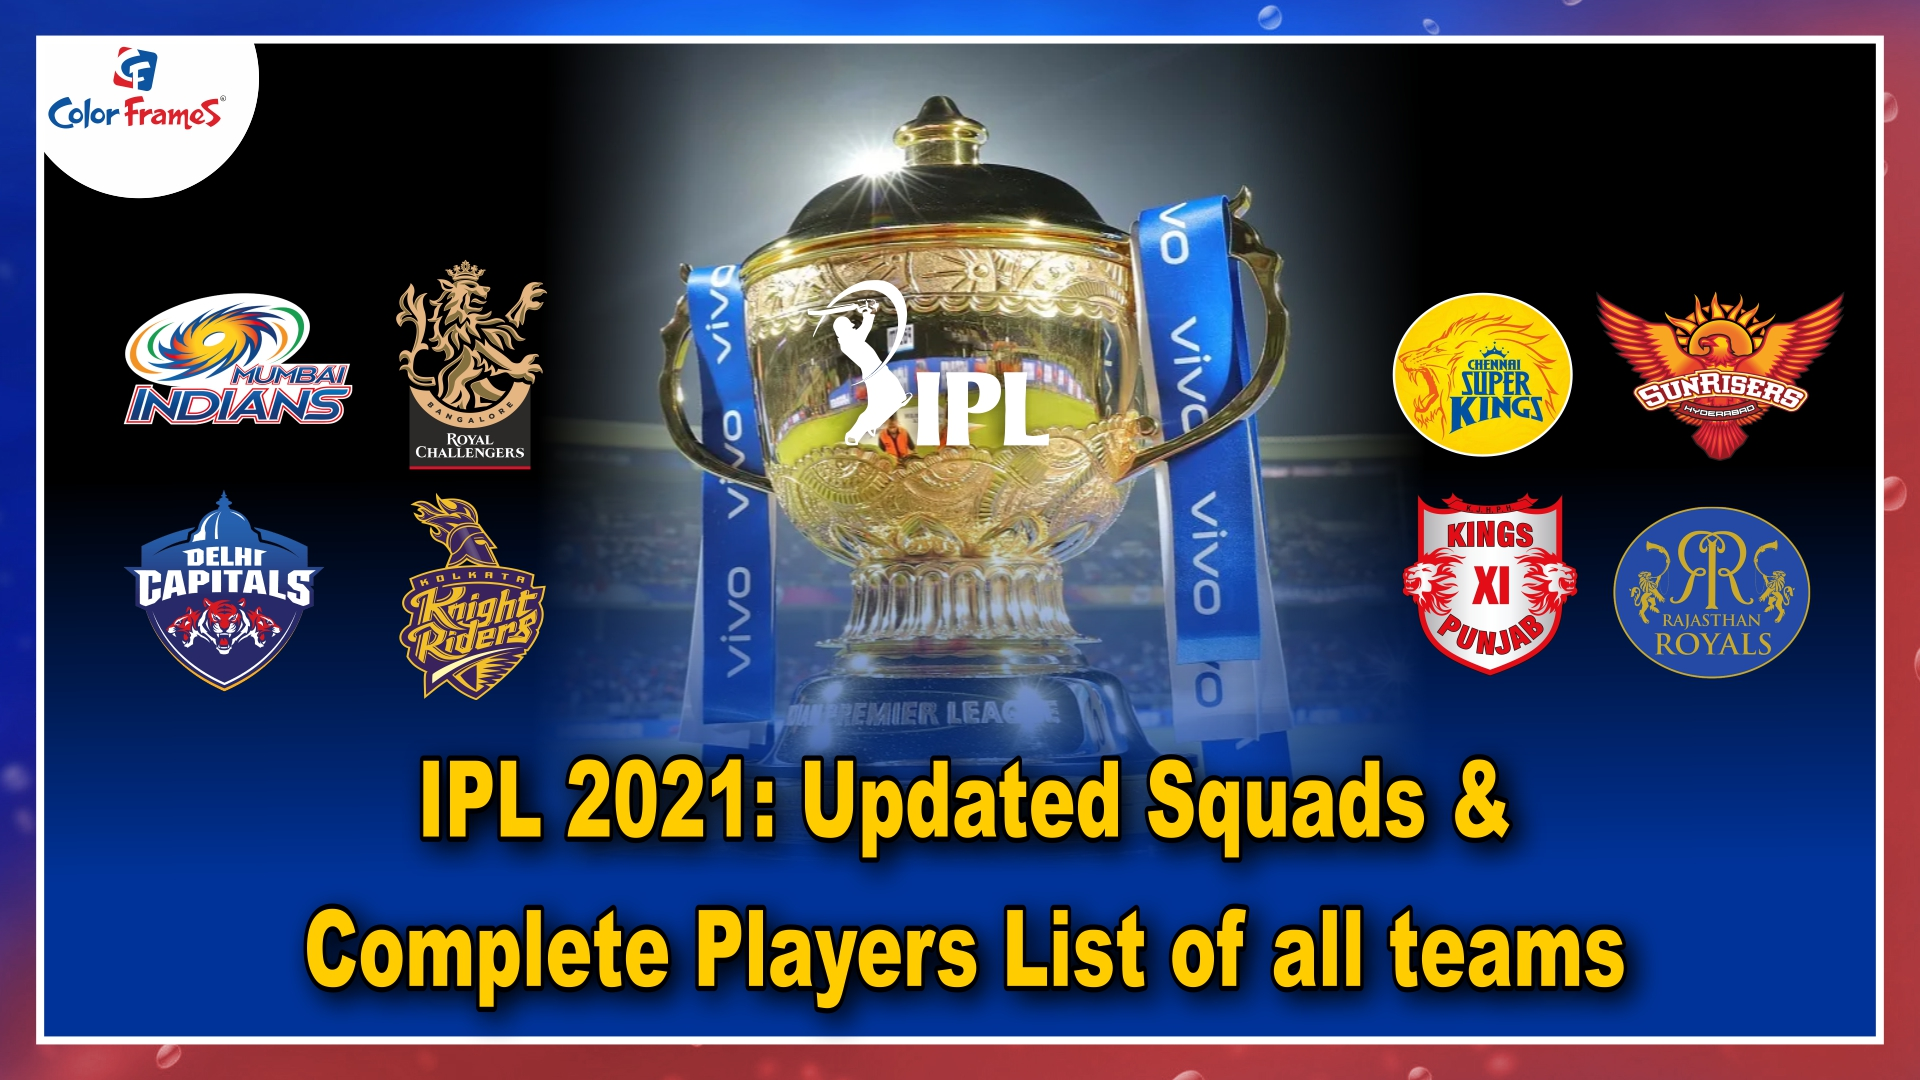 IPL 2021: Updated Squads & Complete Players List of all teams